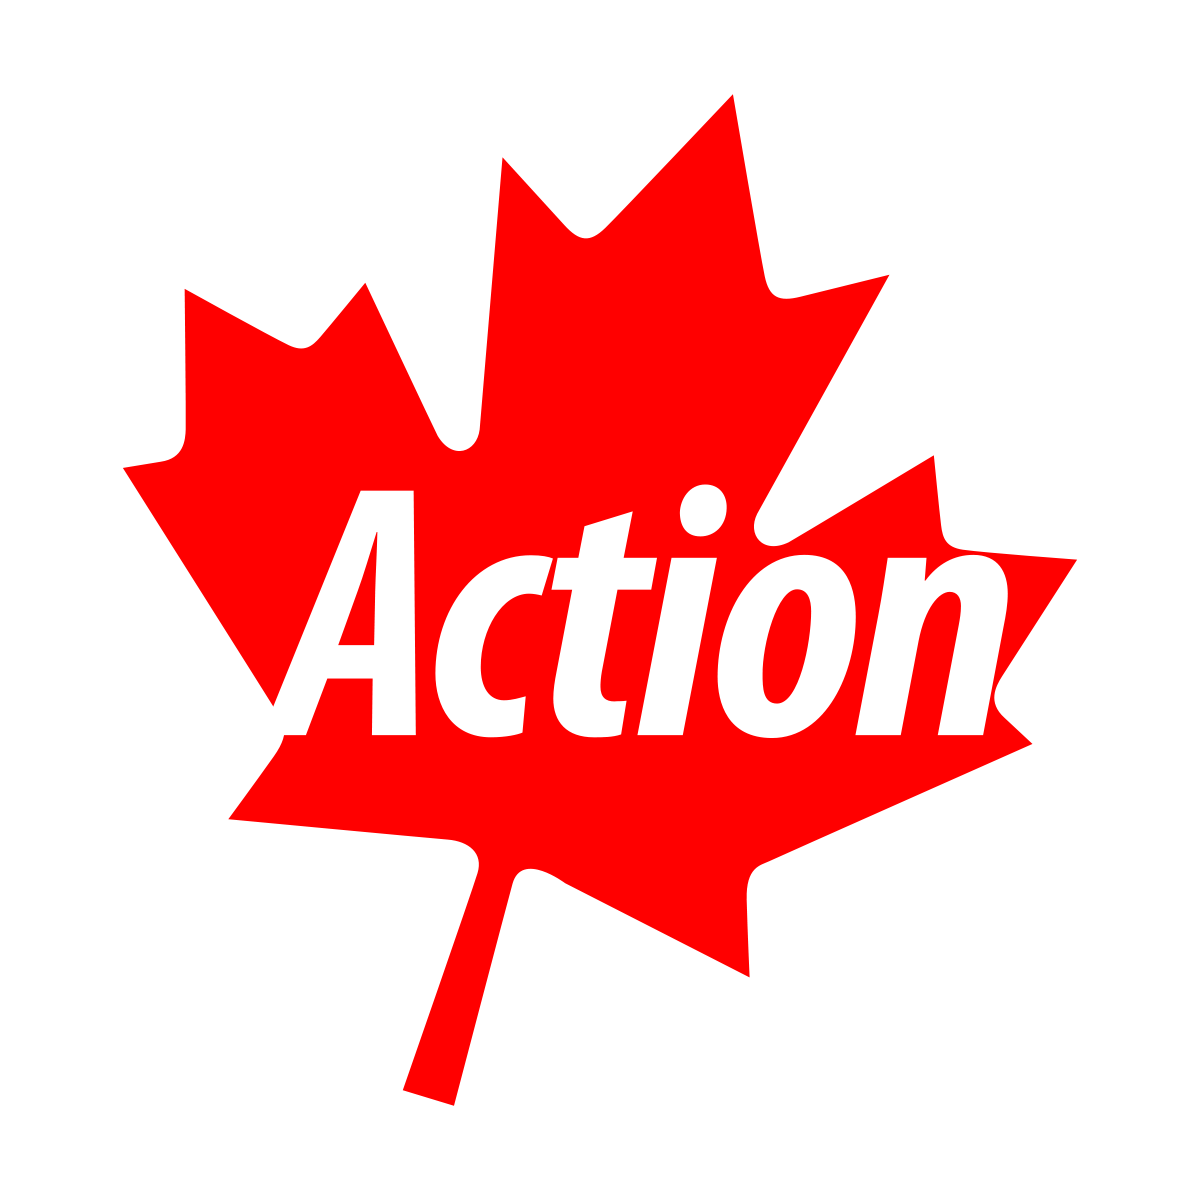 Action party wikipedia . Voting clipart election canadian